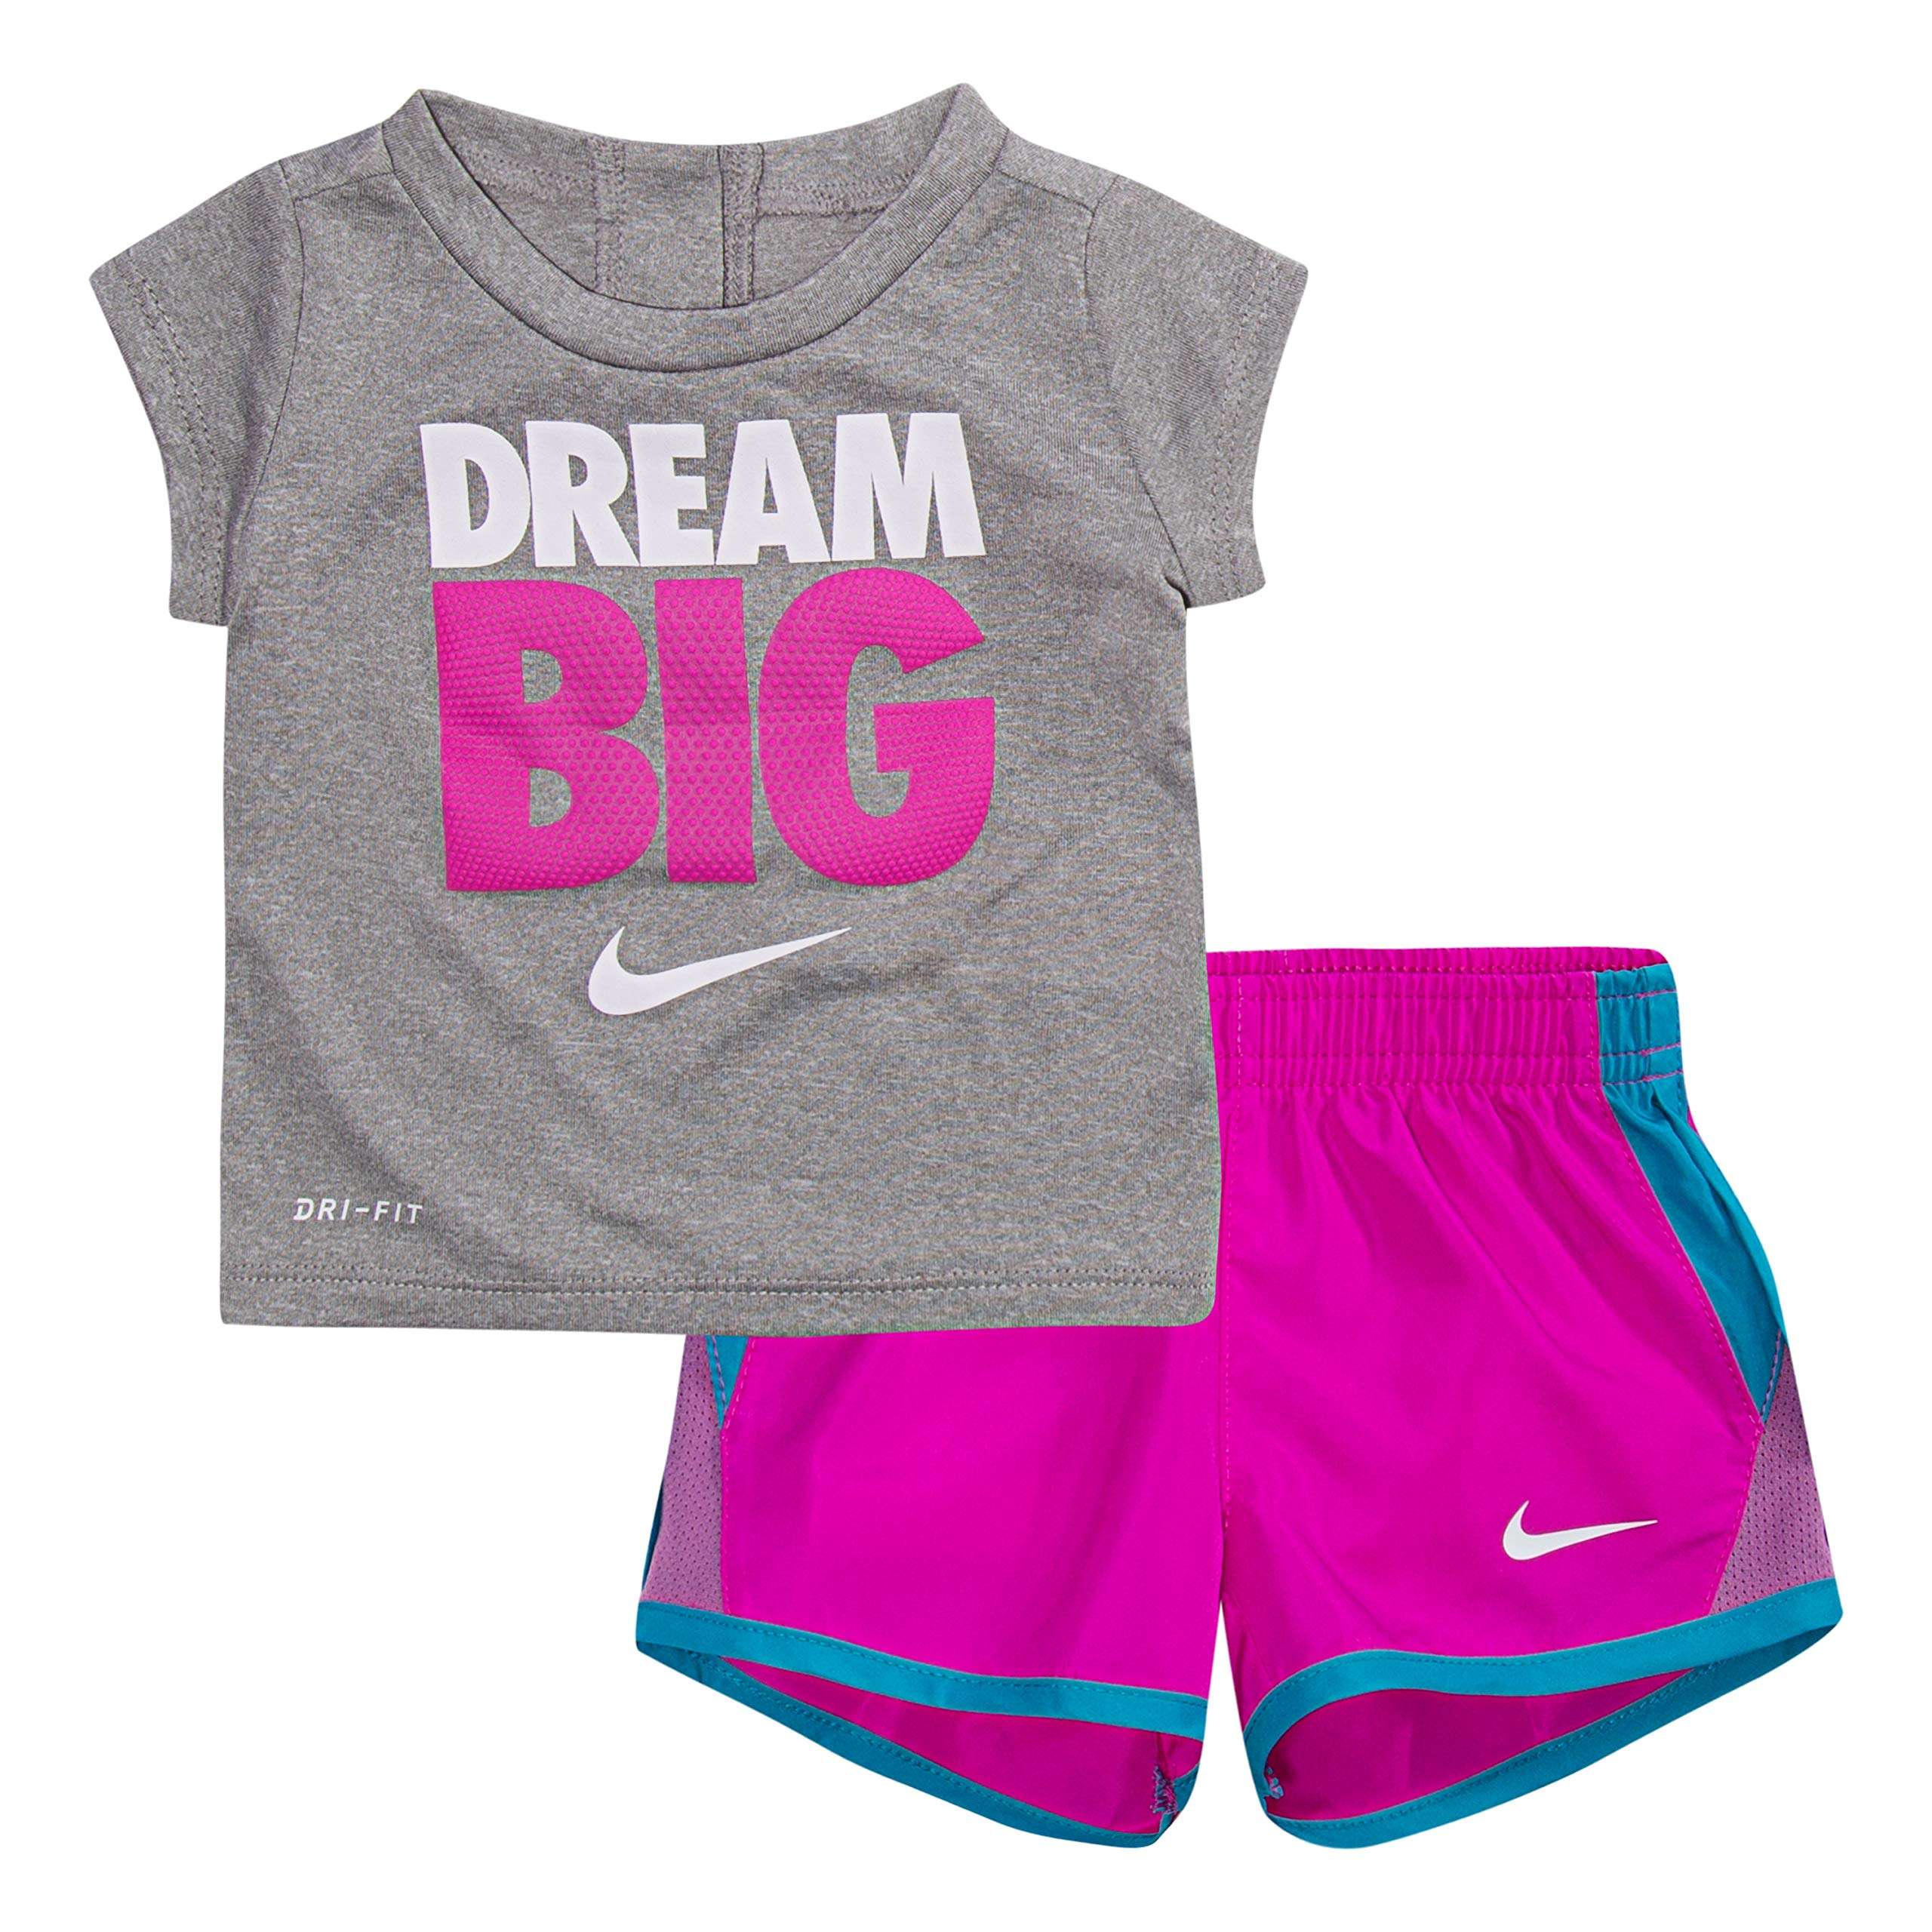 NIKE Children's Apparel Girls' Toddler Graphic T-Shirt and Shorts 2-Piece Outfit Set, Hyper Magenta/Dark Grey Heather, 3T